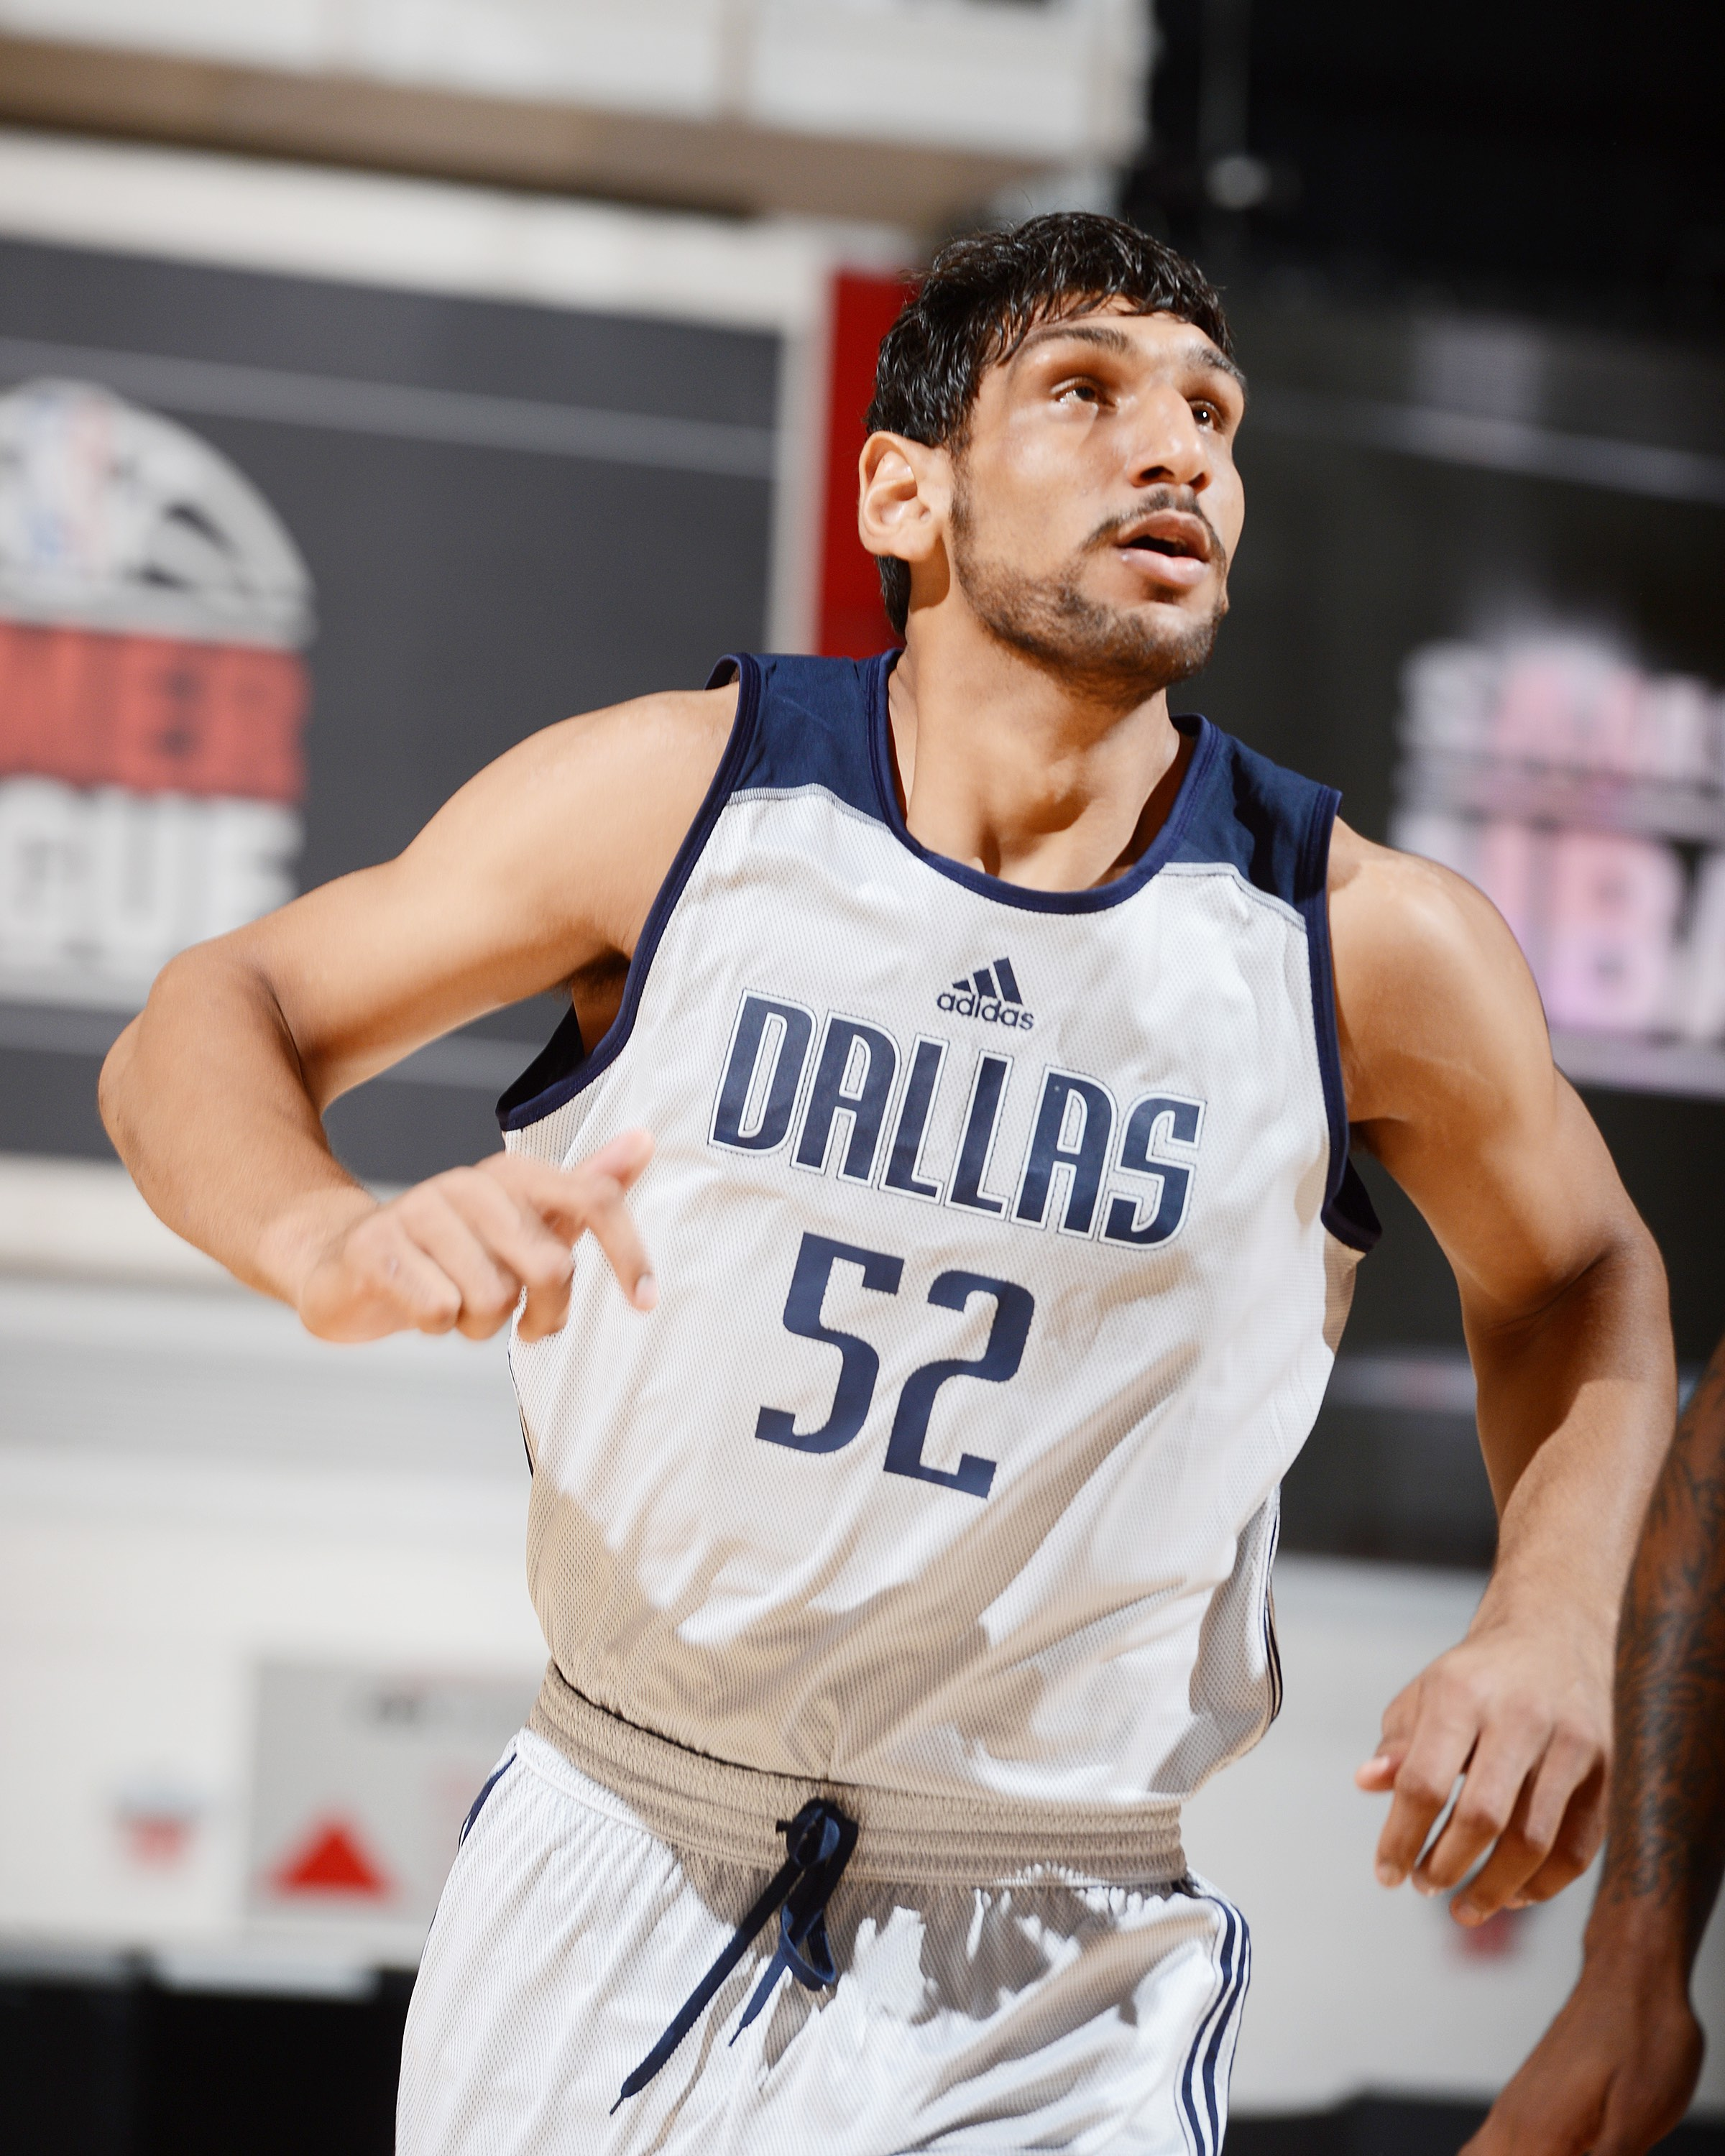 LAS VEGAS, NV - JULY 12: Satnam Singh #52 of the Dallas Mavericks looks on during the game against the Portland Trail Blazers on July 12, 2015 at the Cox Pavilion in Las Vegas, Nevada. NOTE TO USER: User expressly acknowledges and agrees that, by downloading and or using this Photograph, user is consenting to the terms and conditions of the Getty Images License Agreement. Mandatory Copyright Notice: Copyright 2015 NBAE (Photo by Garrett Ellwood/NBAE via Getty Images)